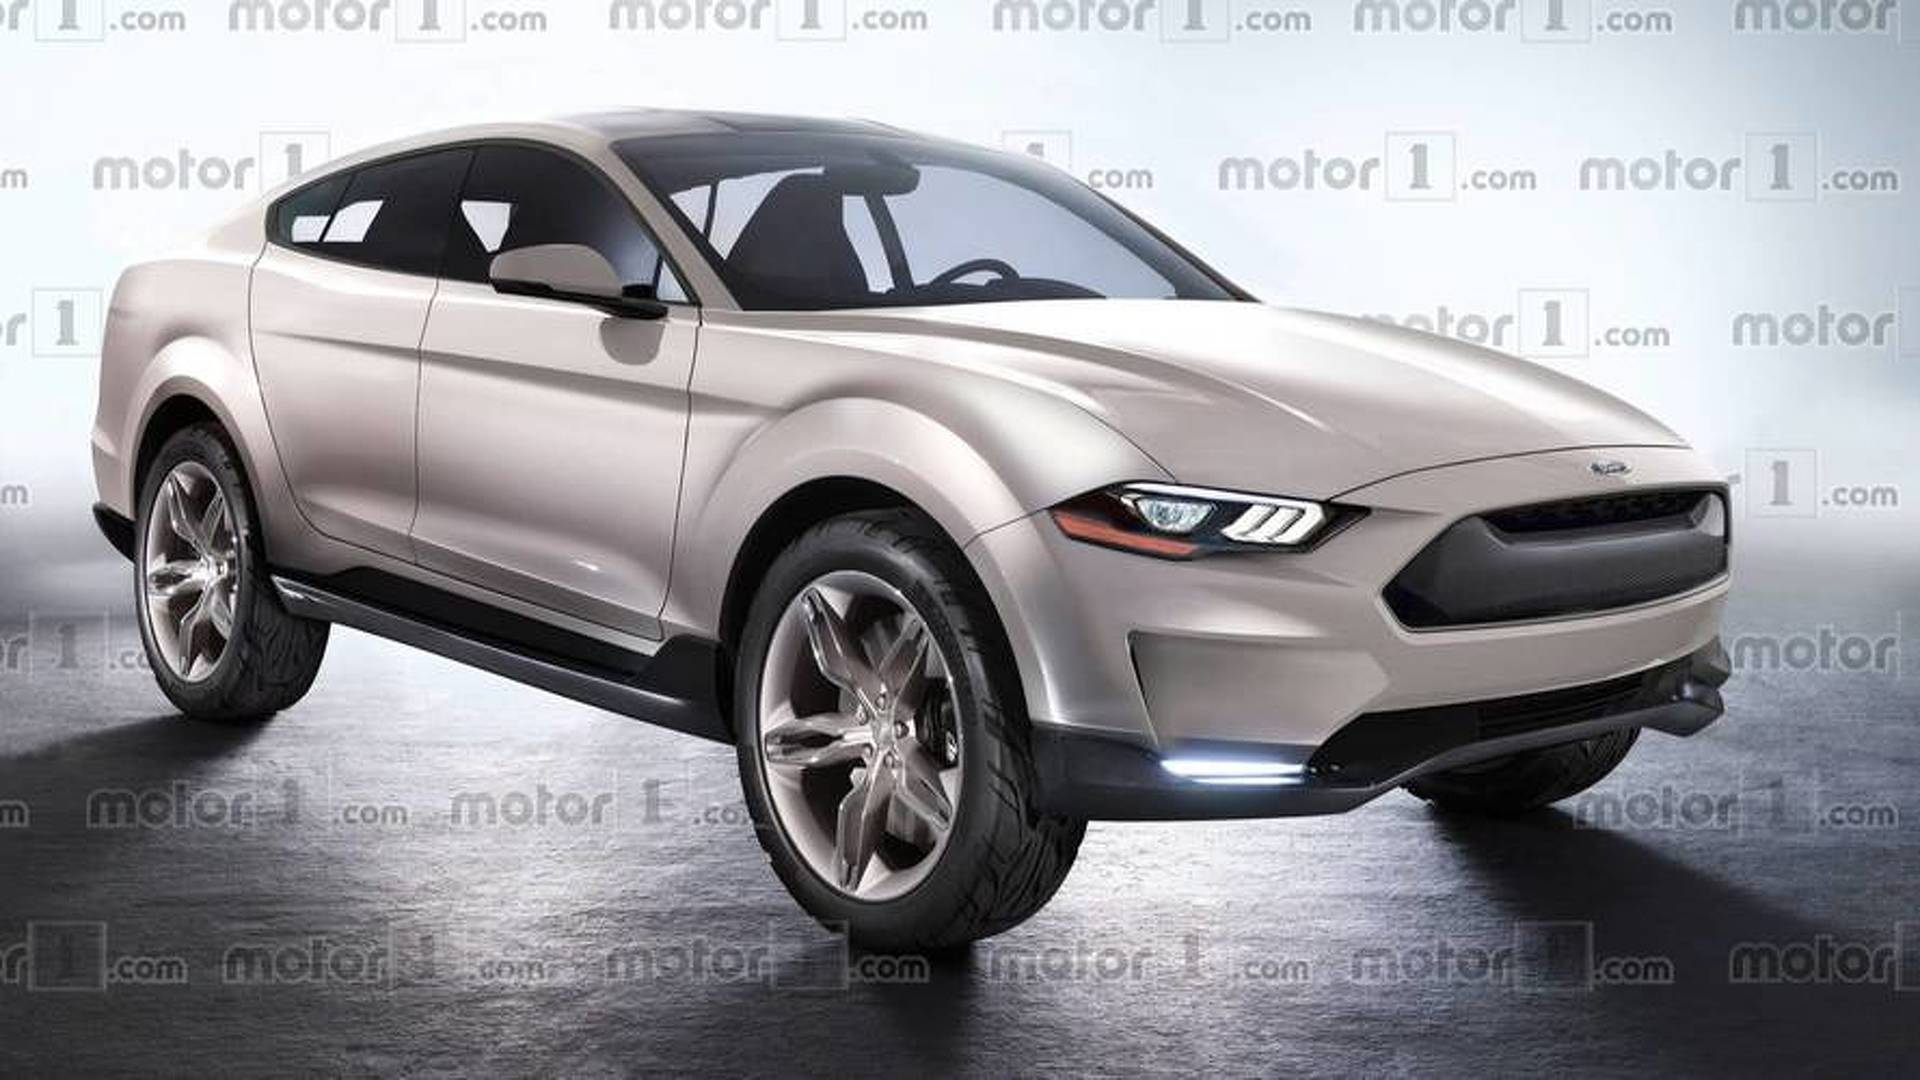 87 The 2020 Mustang Mach 1 Photos